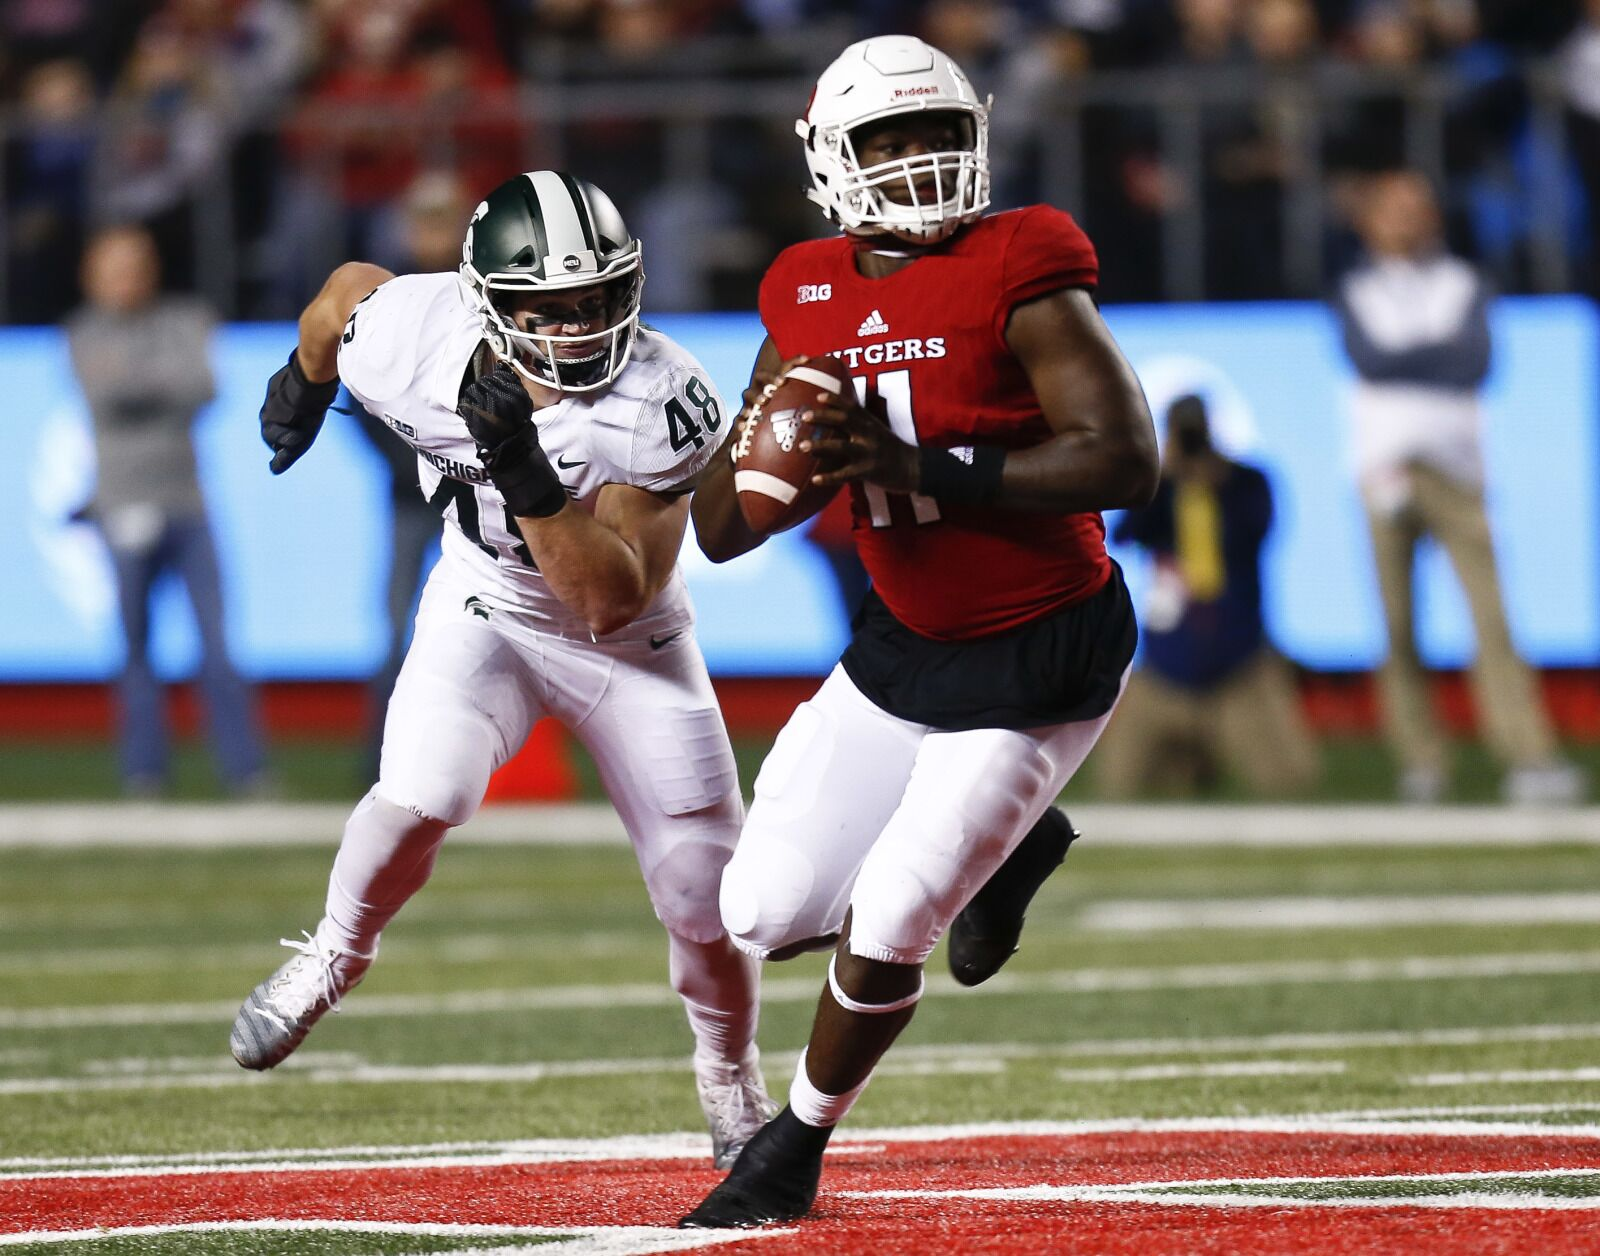 Michigan State Football: Is Kenny Willekes the best DL in Mark Dantonio era?